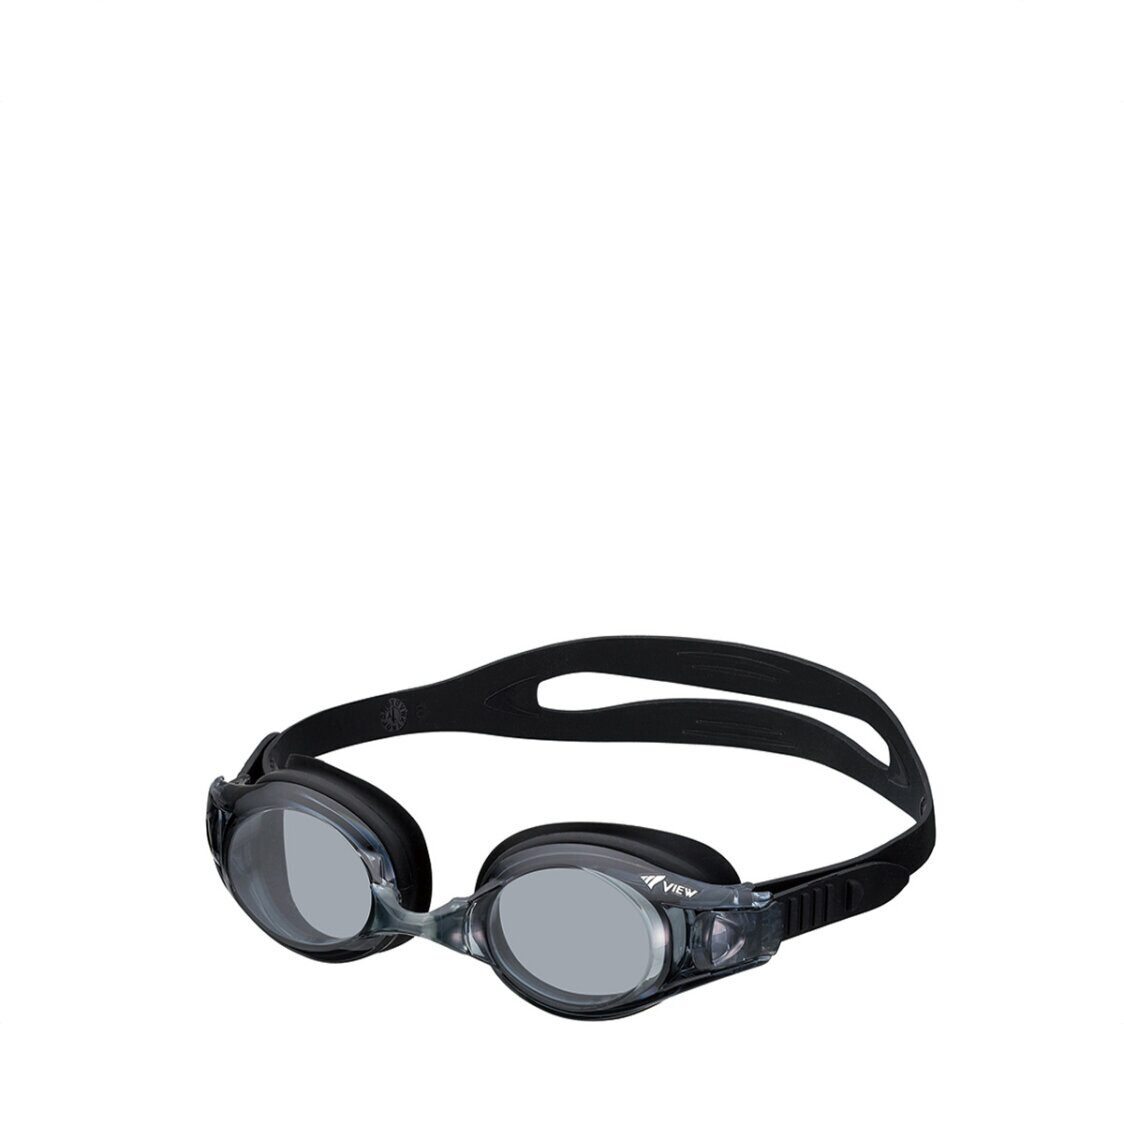 View Adult Goggle Black AAV550A